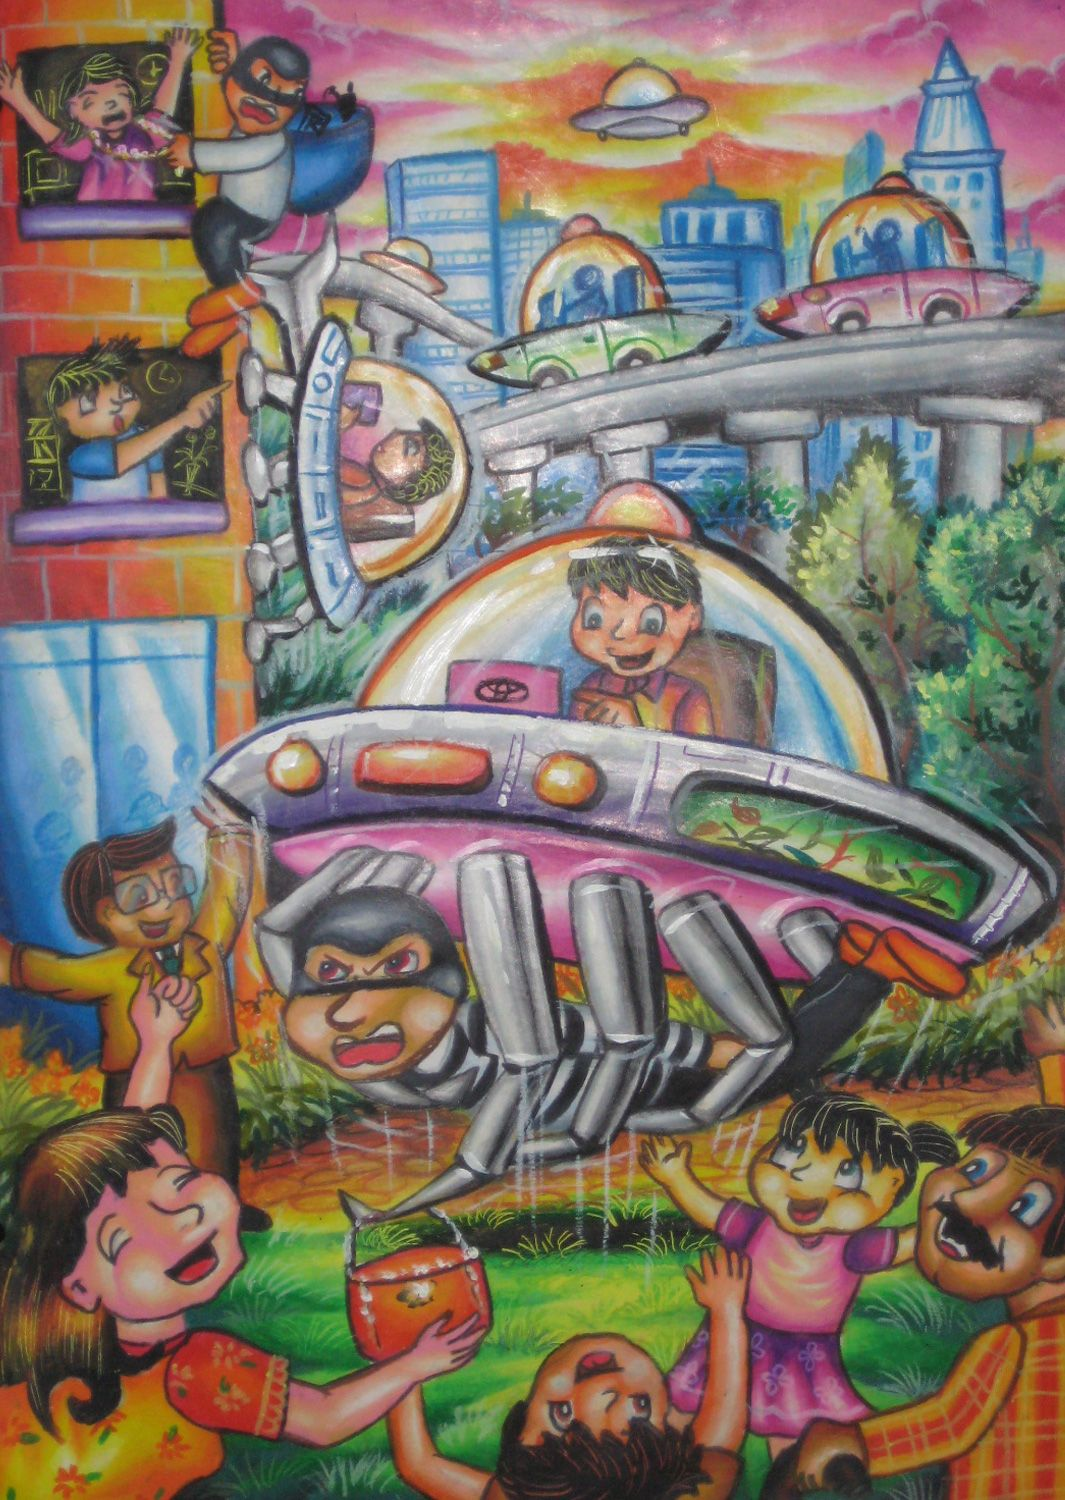 'Security Car' by Stanley Orlando, Aged 11, Indonesia 4th